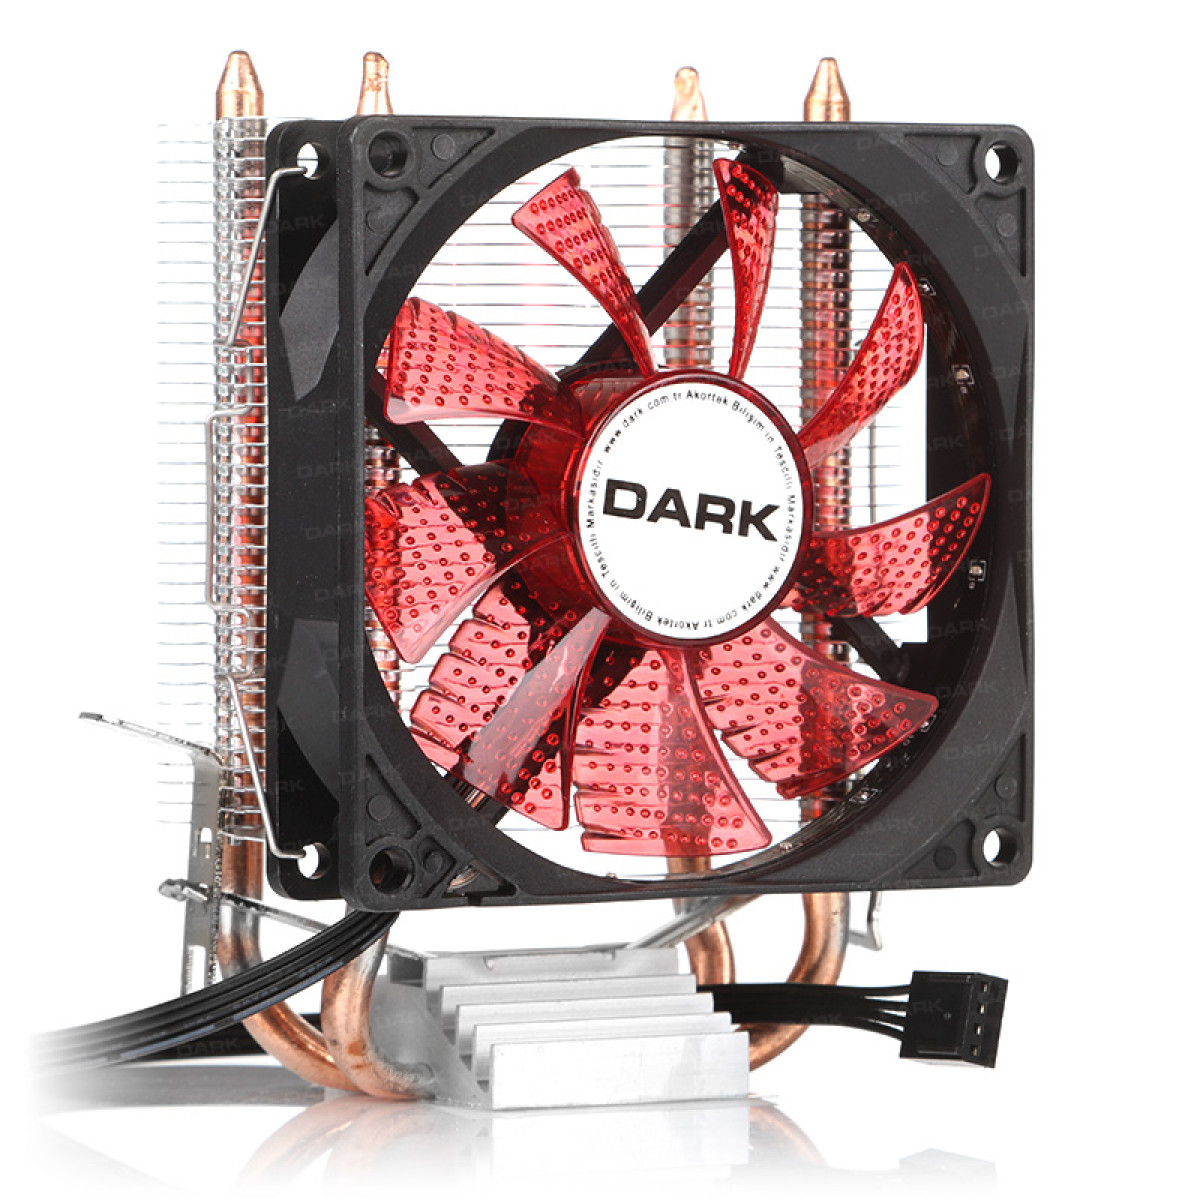 DARK FREEZER X92RD DKCCX92RD AMD/INTEL 1156/1155/1150/FM2+/FM1/AM3+/A İŞLEMCİ FANI